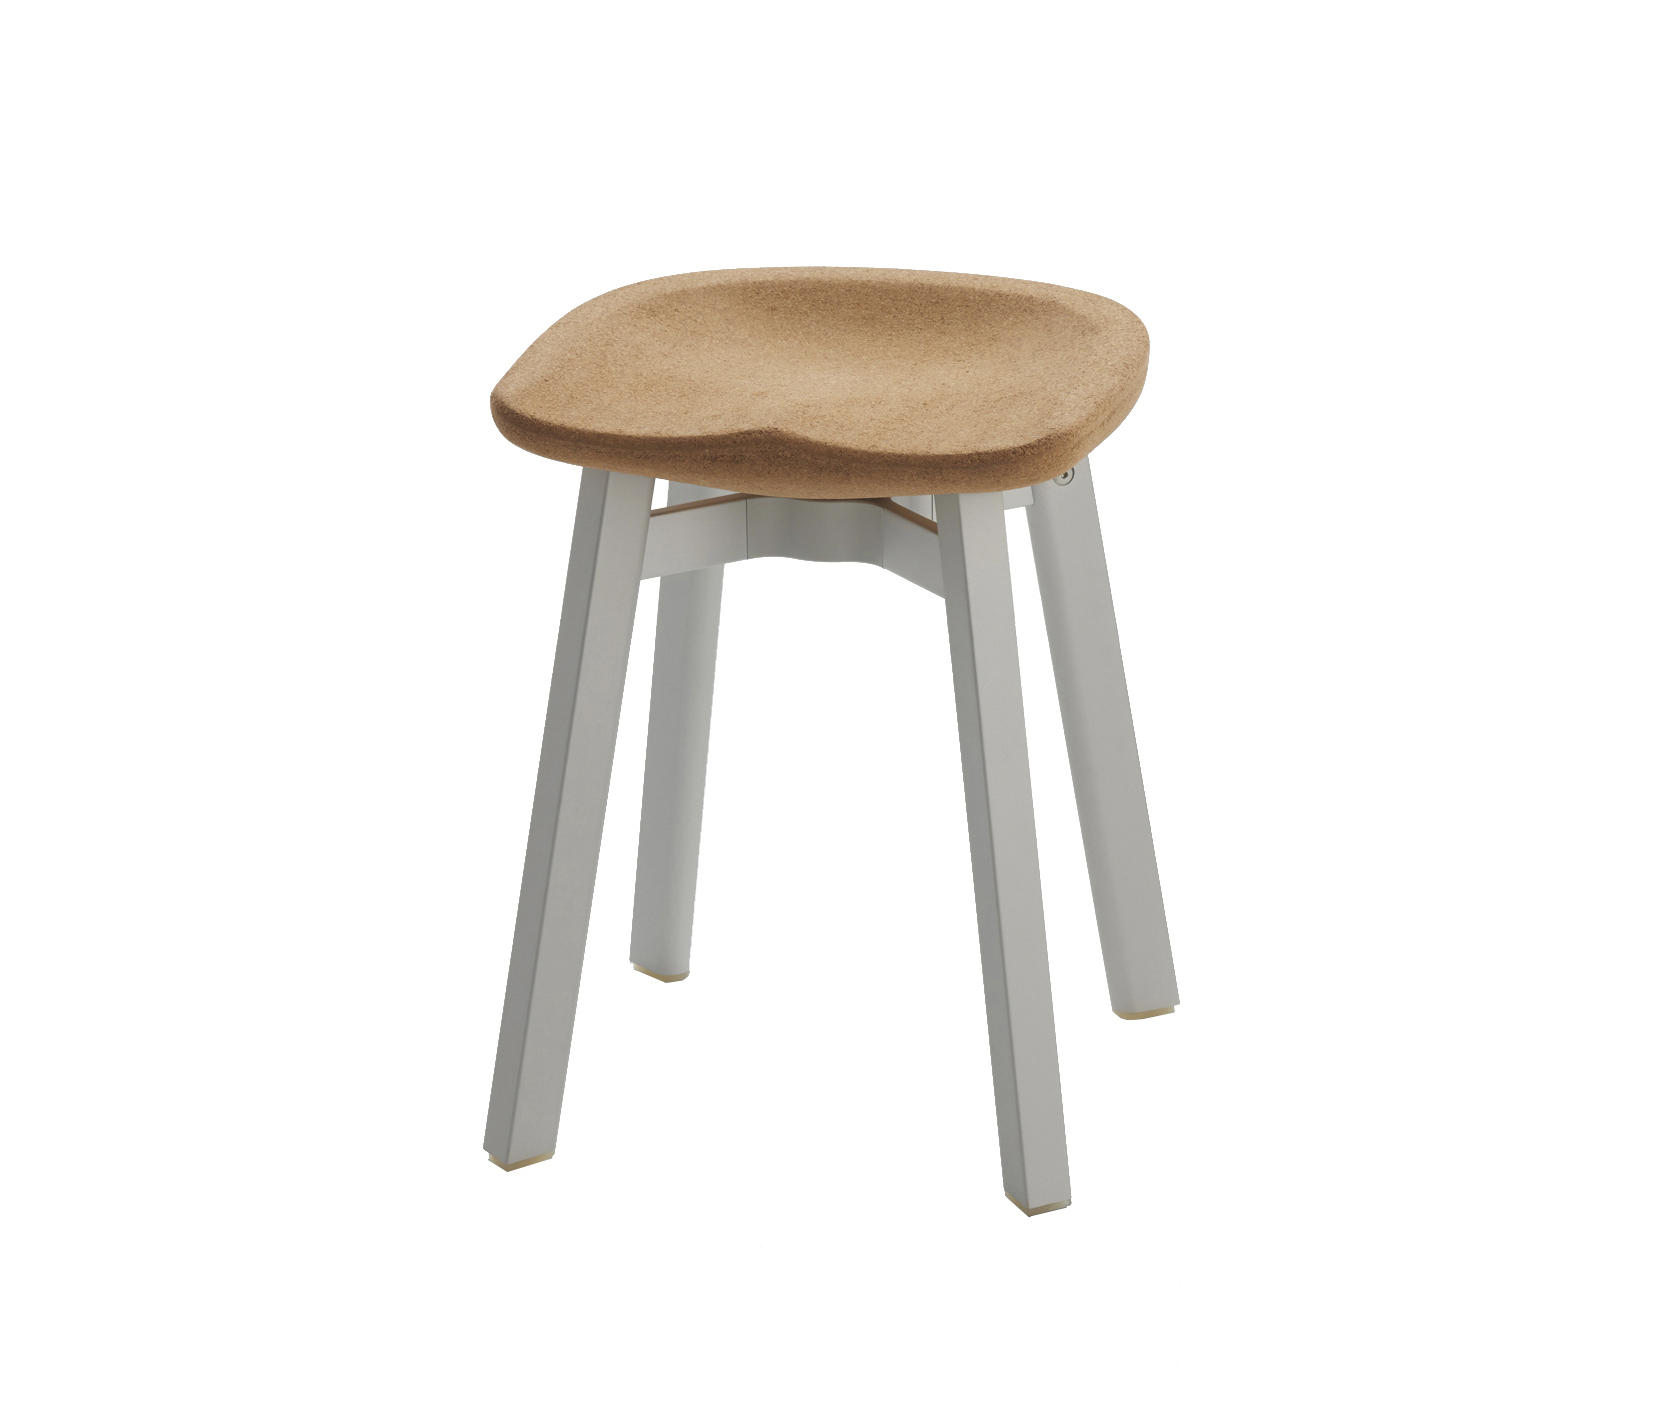 things original beautiful stool allthingsbrightonbeautiful oak product by brighton all raw small